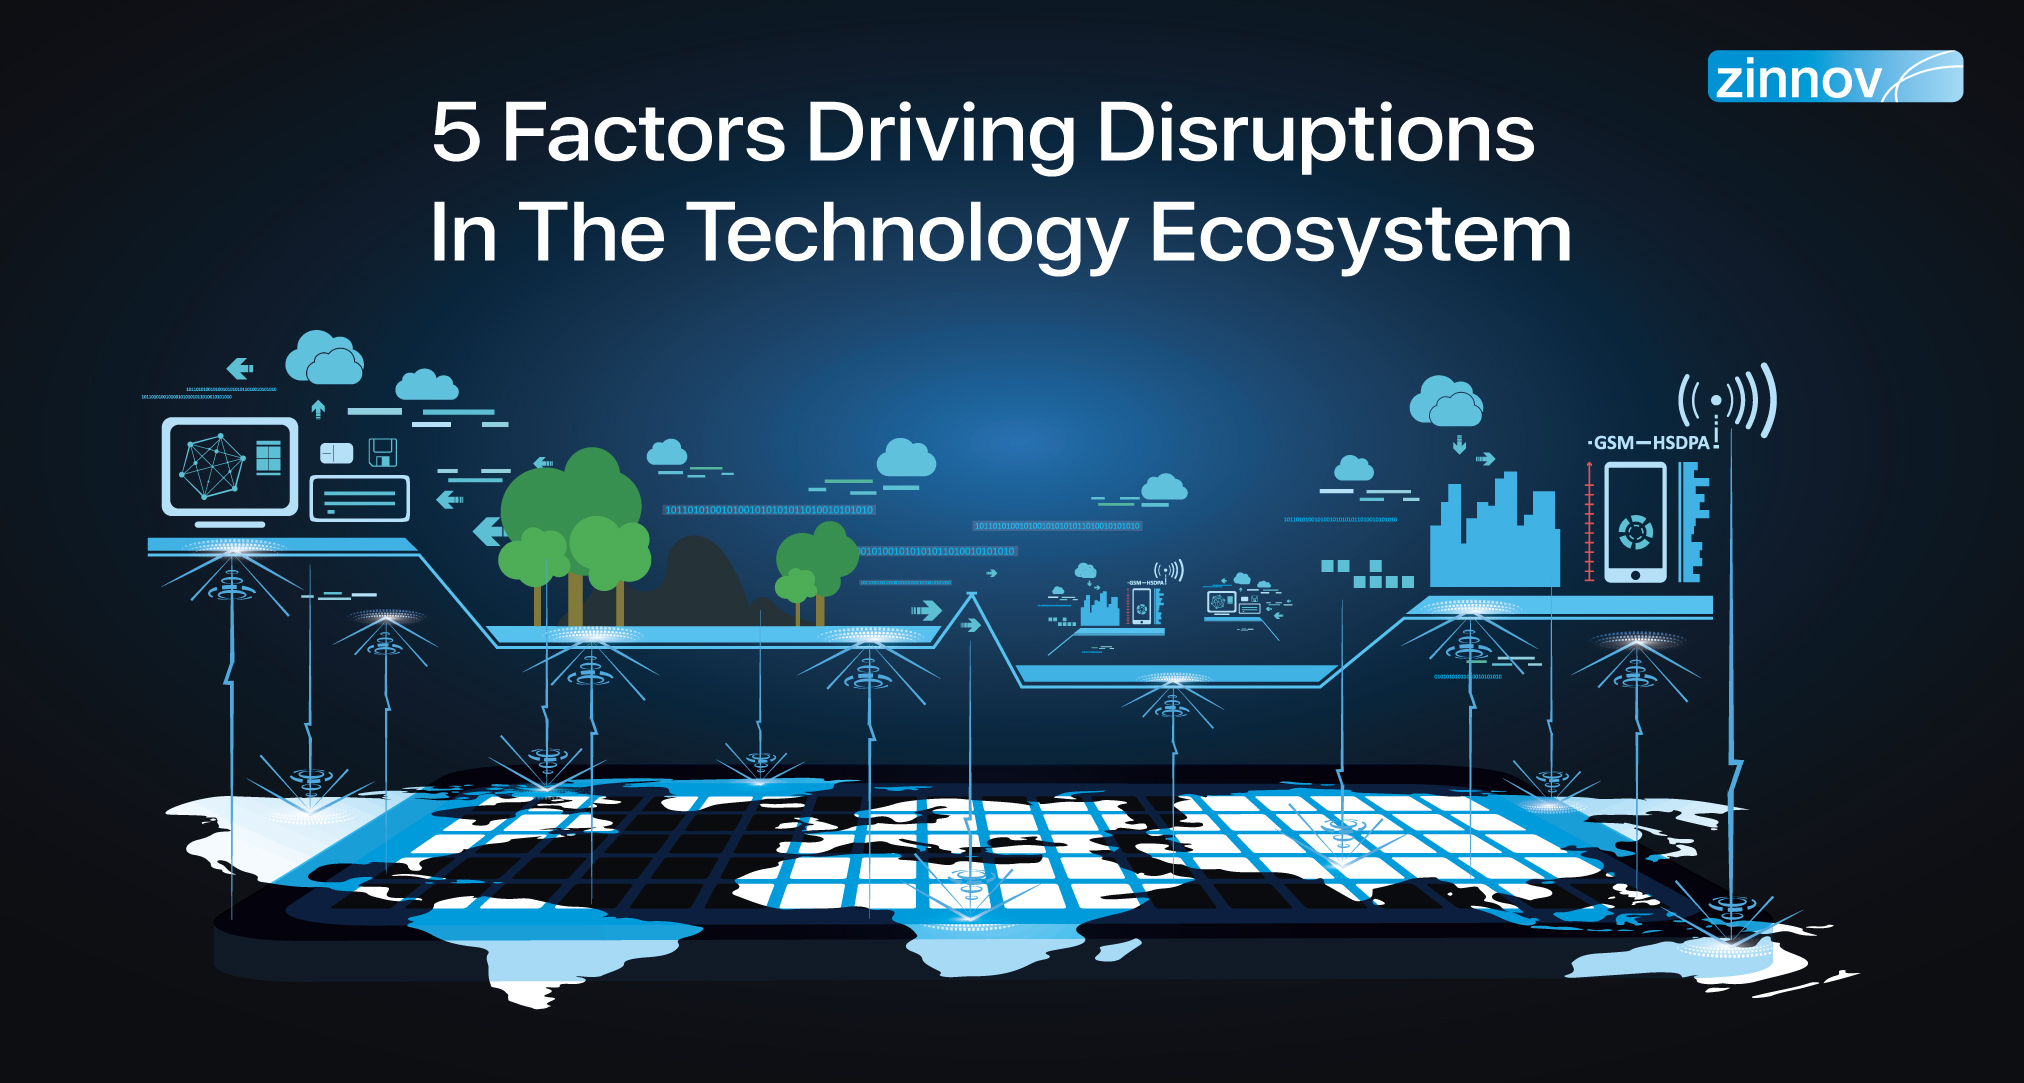 5 Factors Driving Disruptions In The Technology Ecosystem